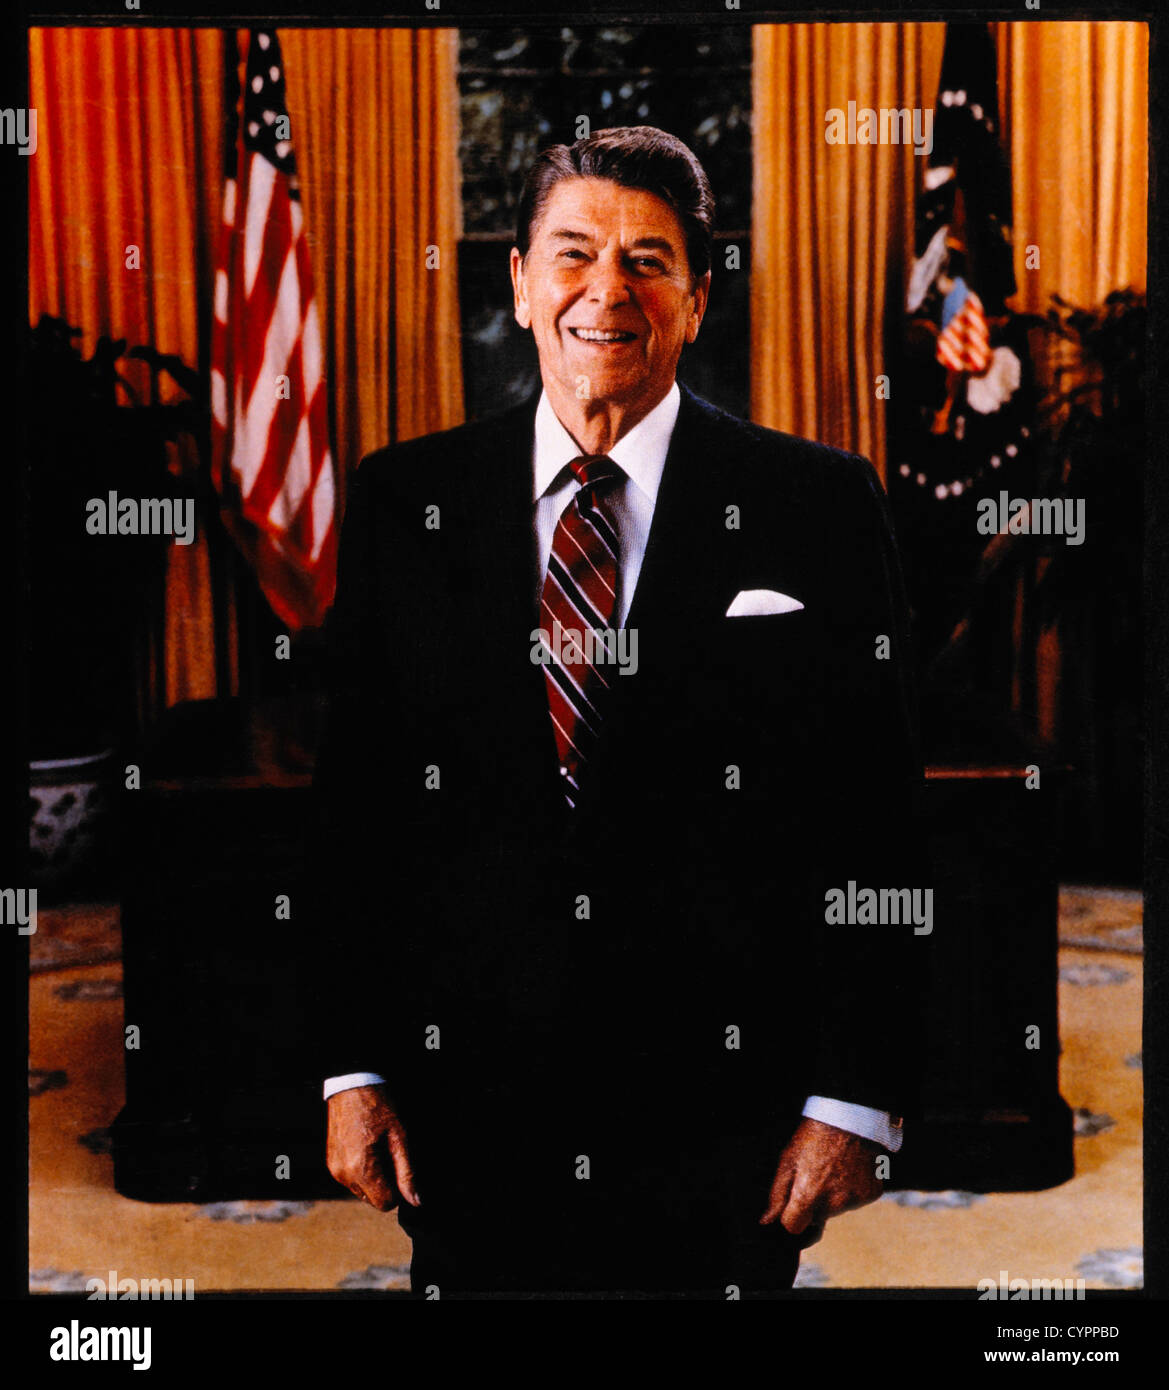 Ronald Reagan (1911-2004), 40th President of the United States, Portrait, 1981 - Stock Image